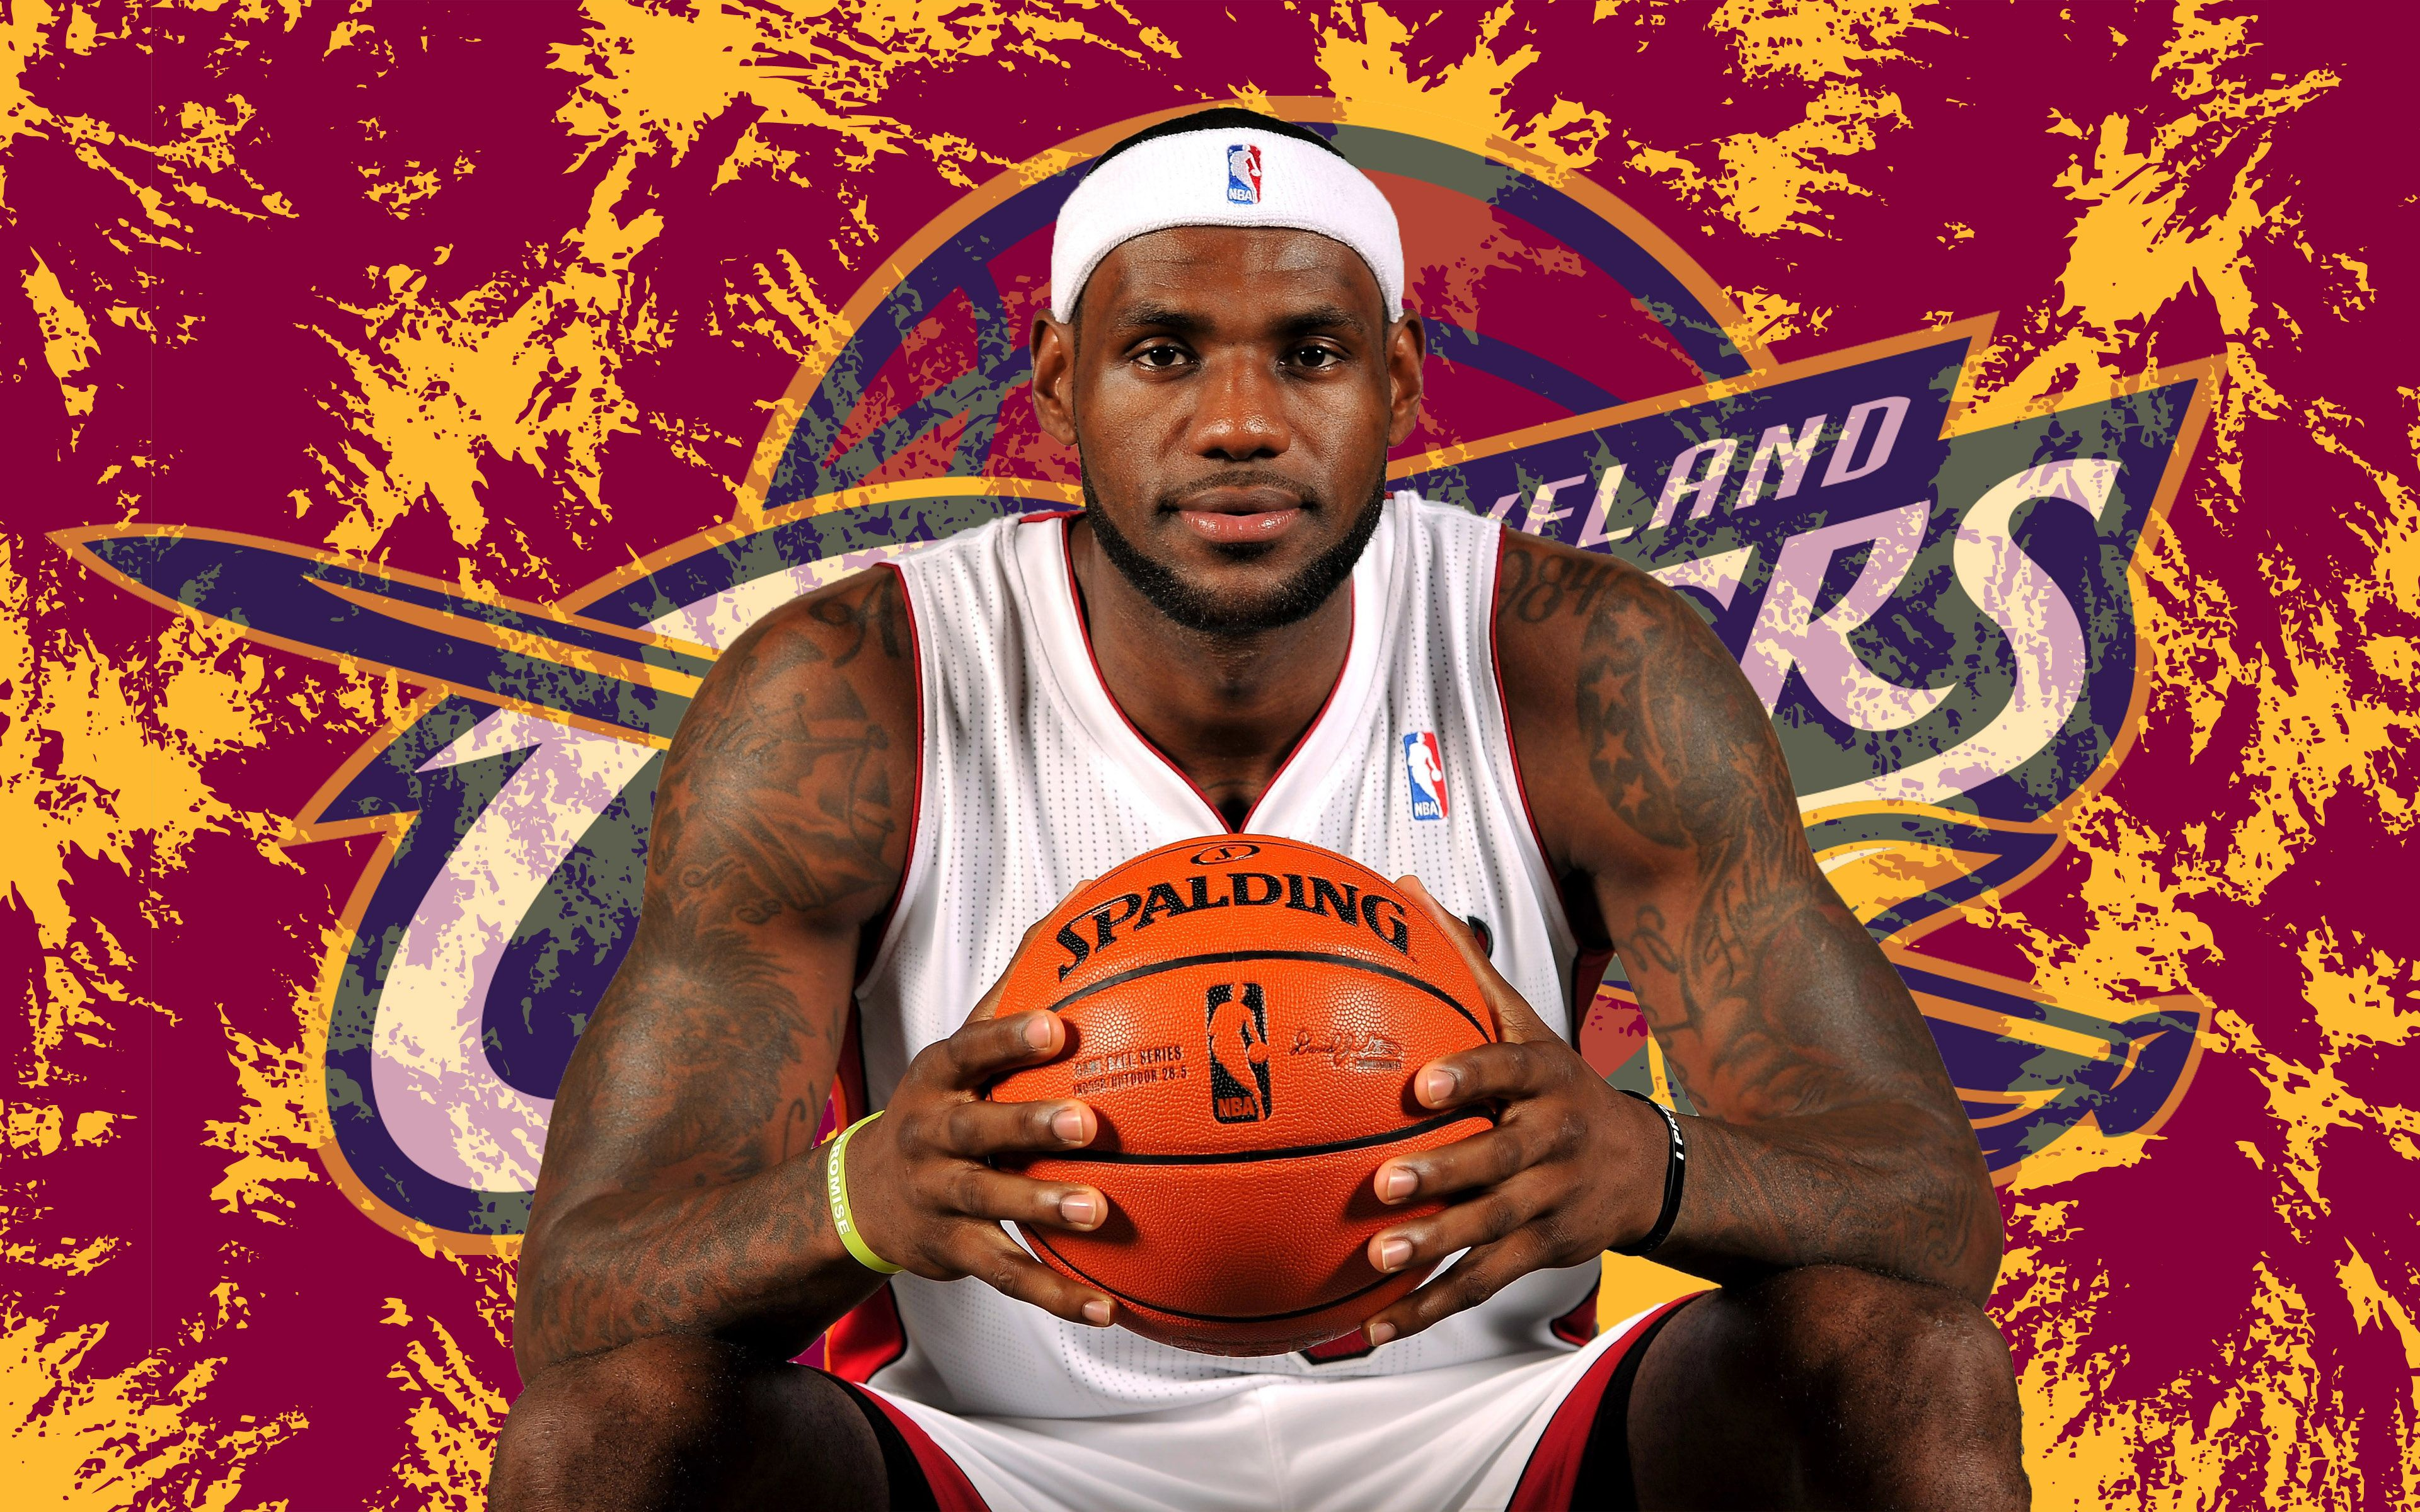 LeBron James Cleveland Cavaliers LeBron James 2014